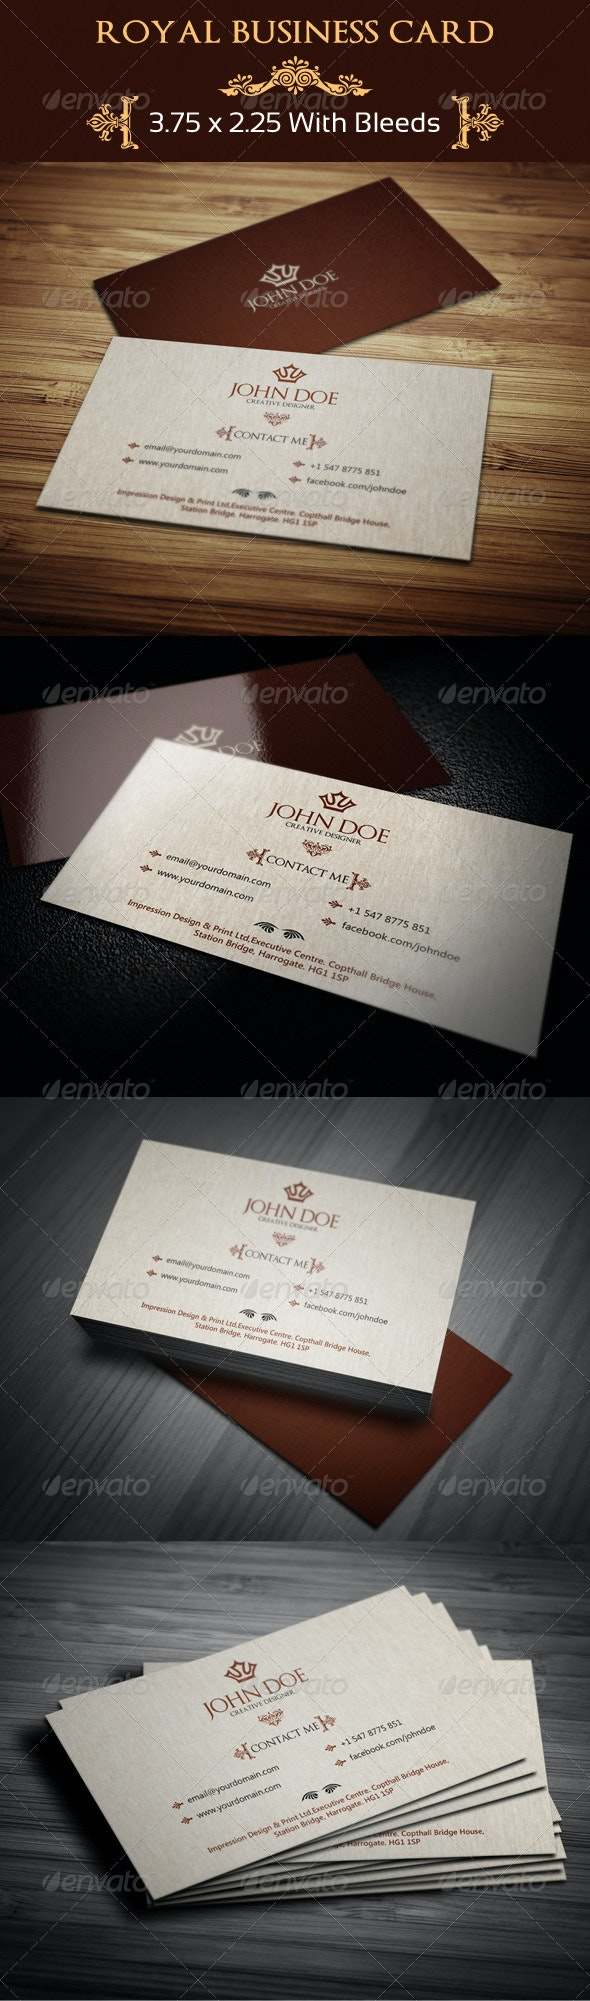 Royal Business Card  63 - Creative Business Cards